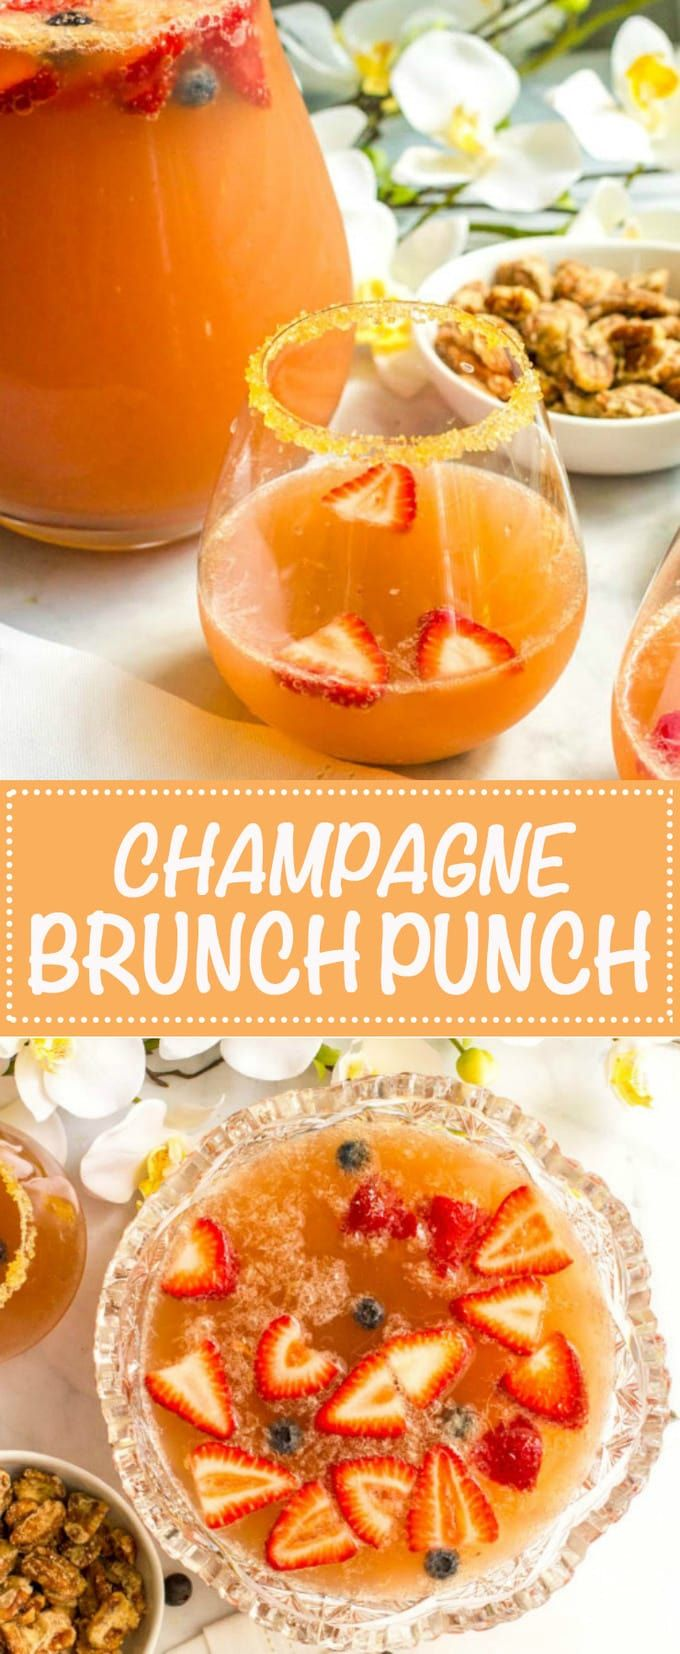 Champagne brunch punch is an easy, fruity, pretty drink recipe that's perfect for setting out at a brunch party! | www.familyfoodonthetable.com